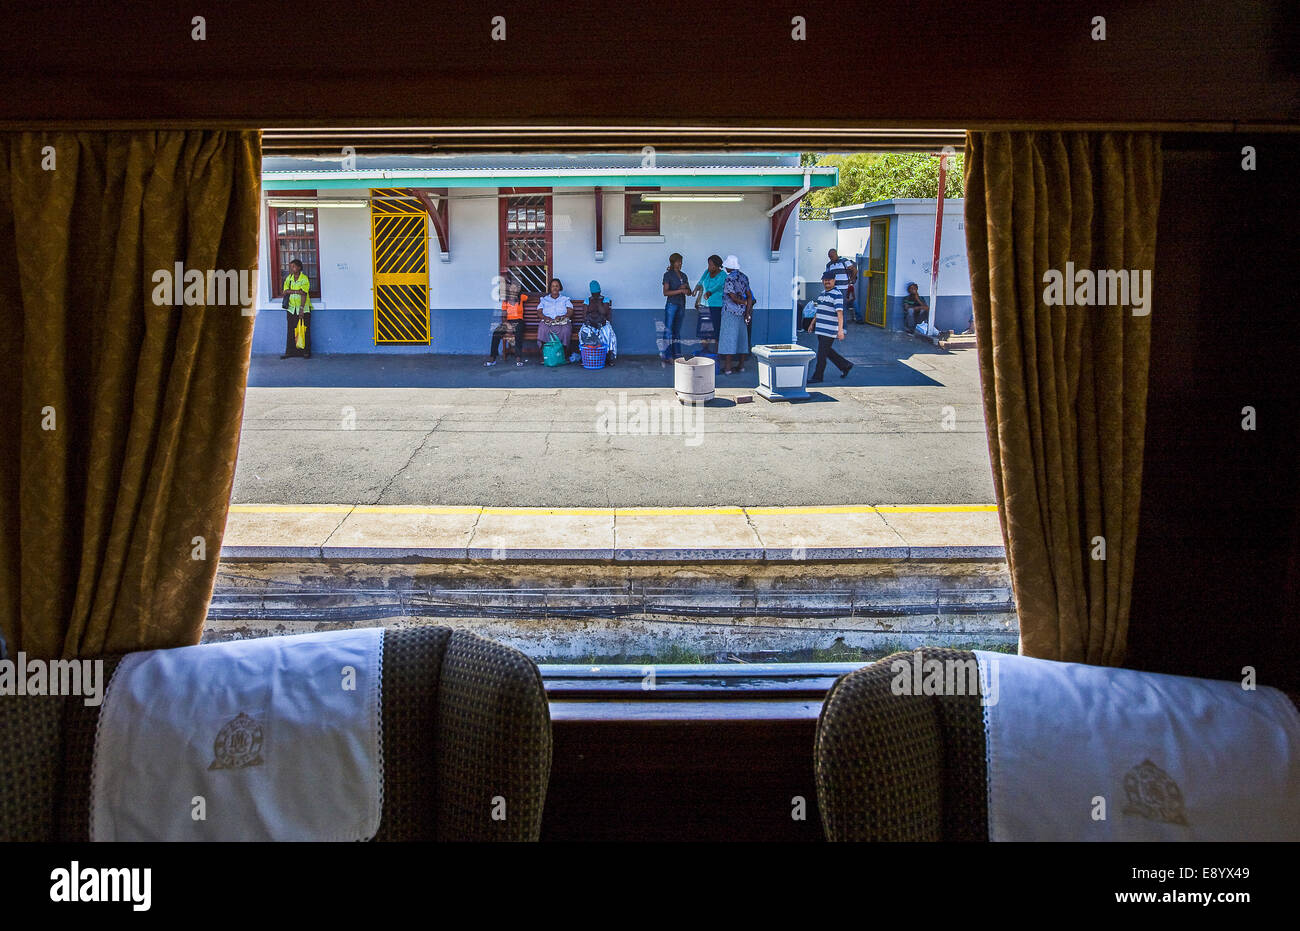 South Africa, the Rovos Rail luxury train in the Huguenot station - Stock Image